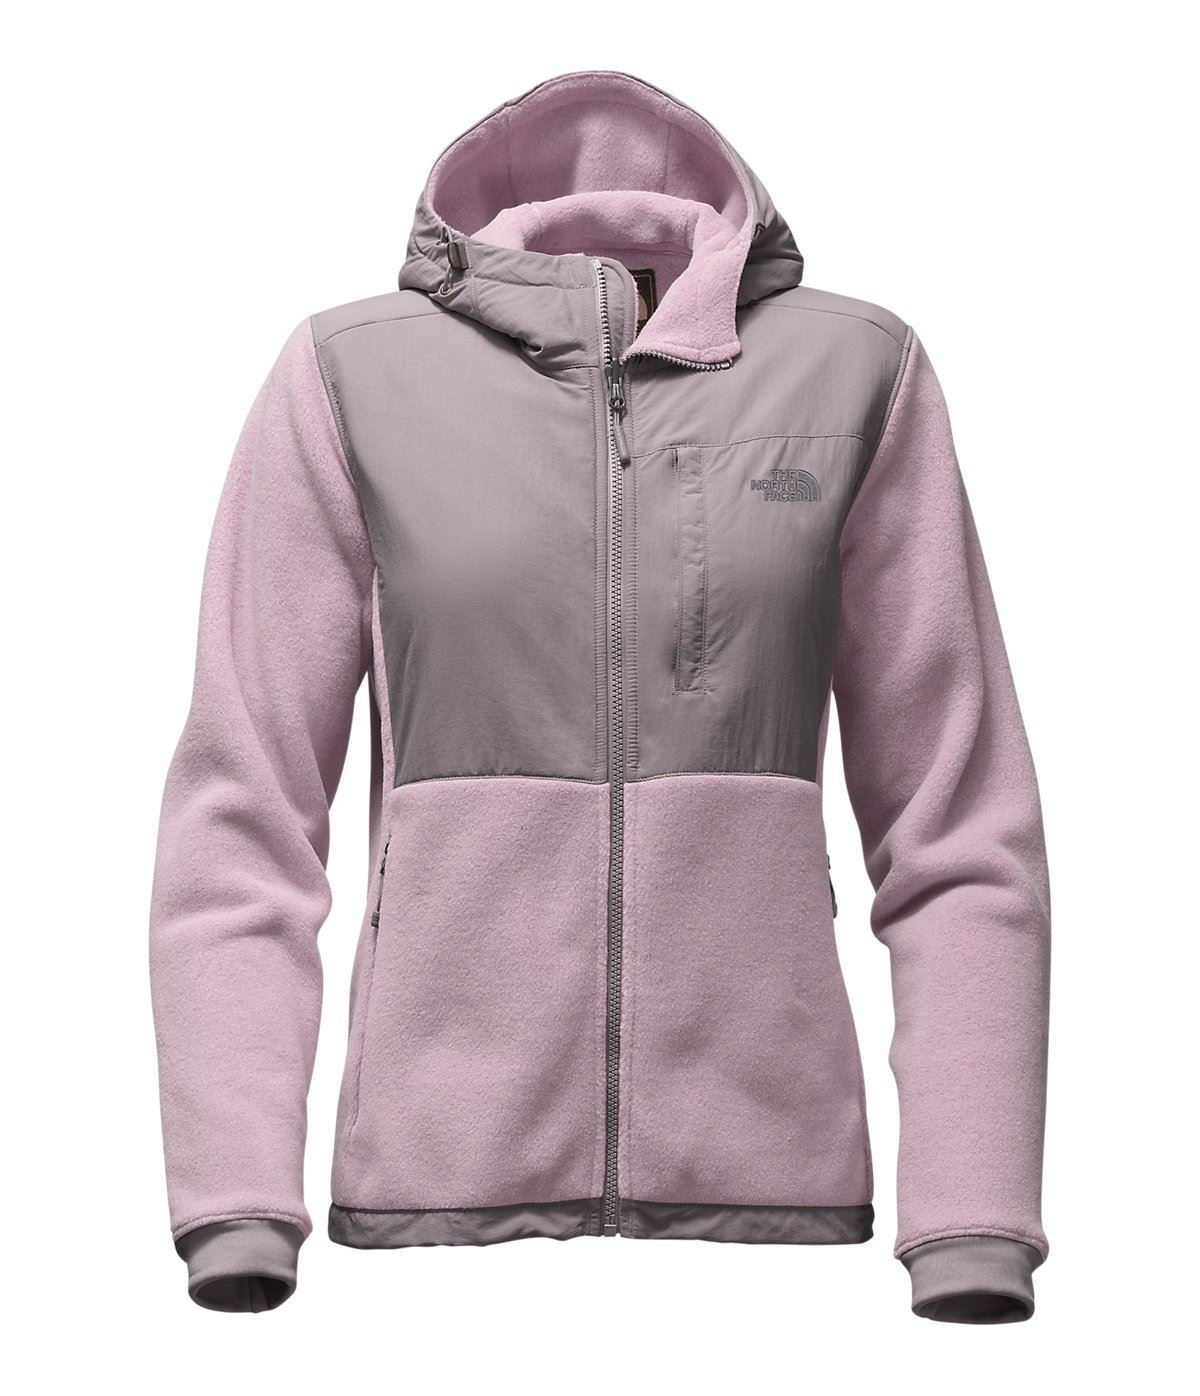 The North Face Women's Denali Hoodie Large Quail Grey/Rabbit Grey